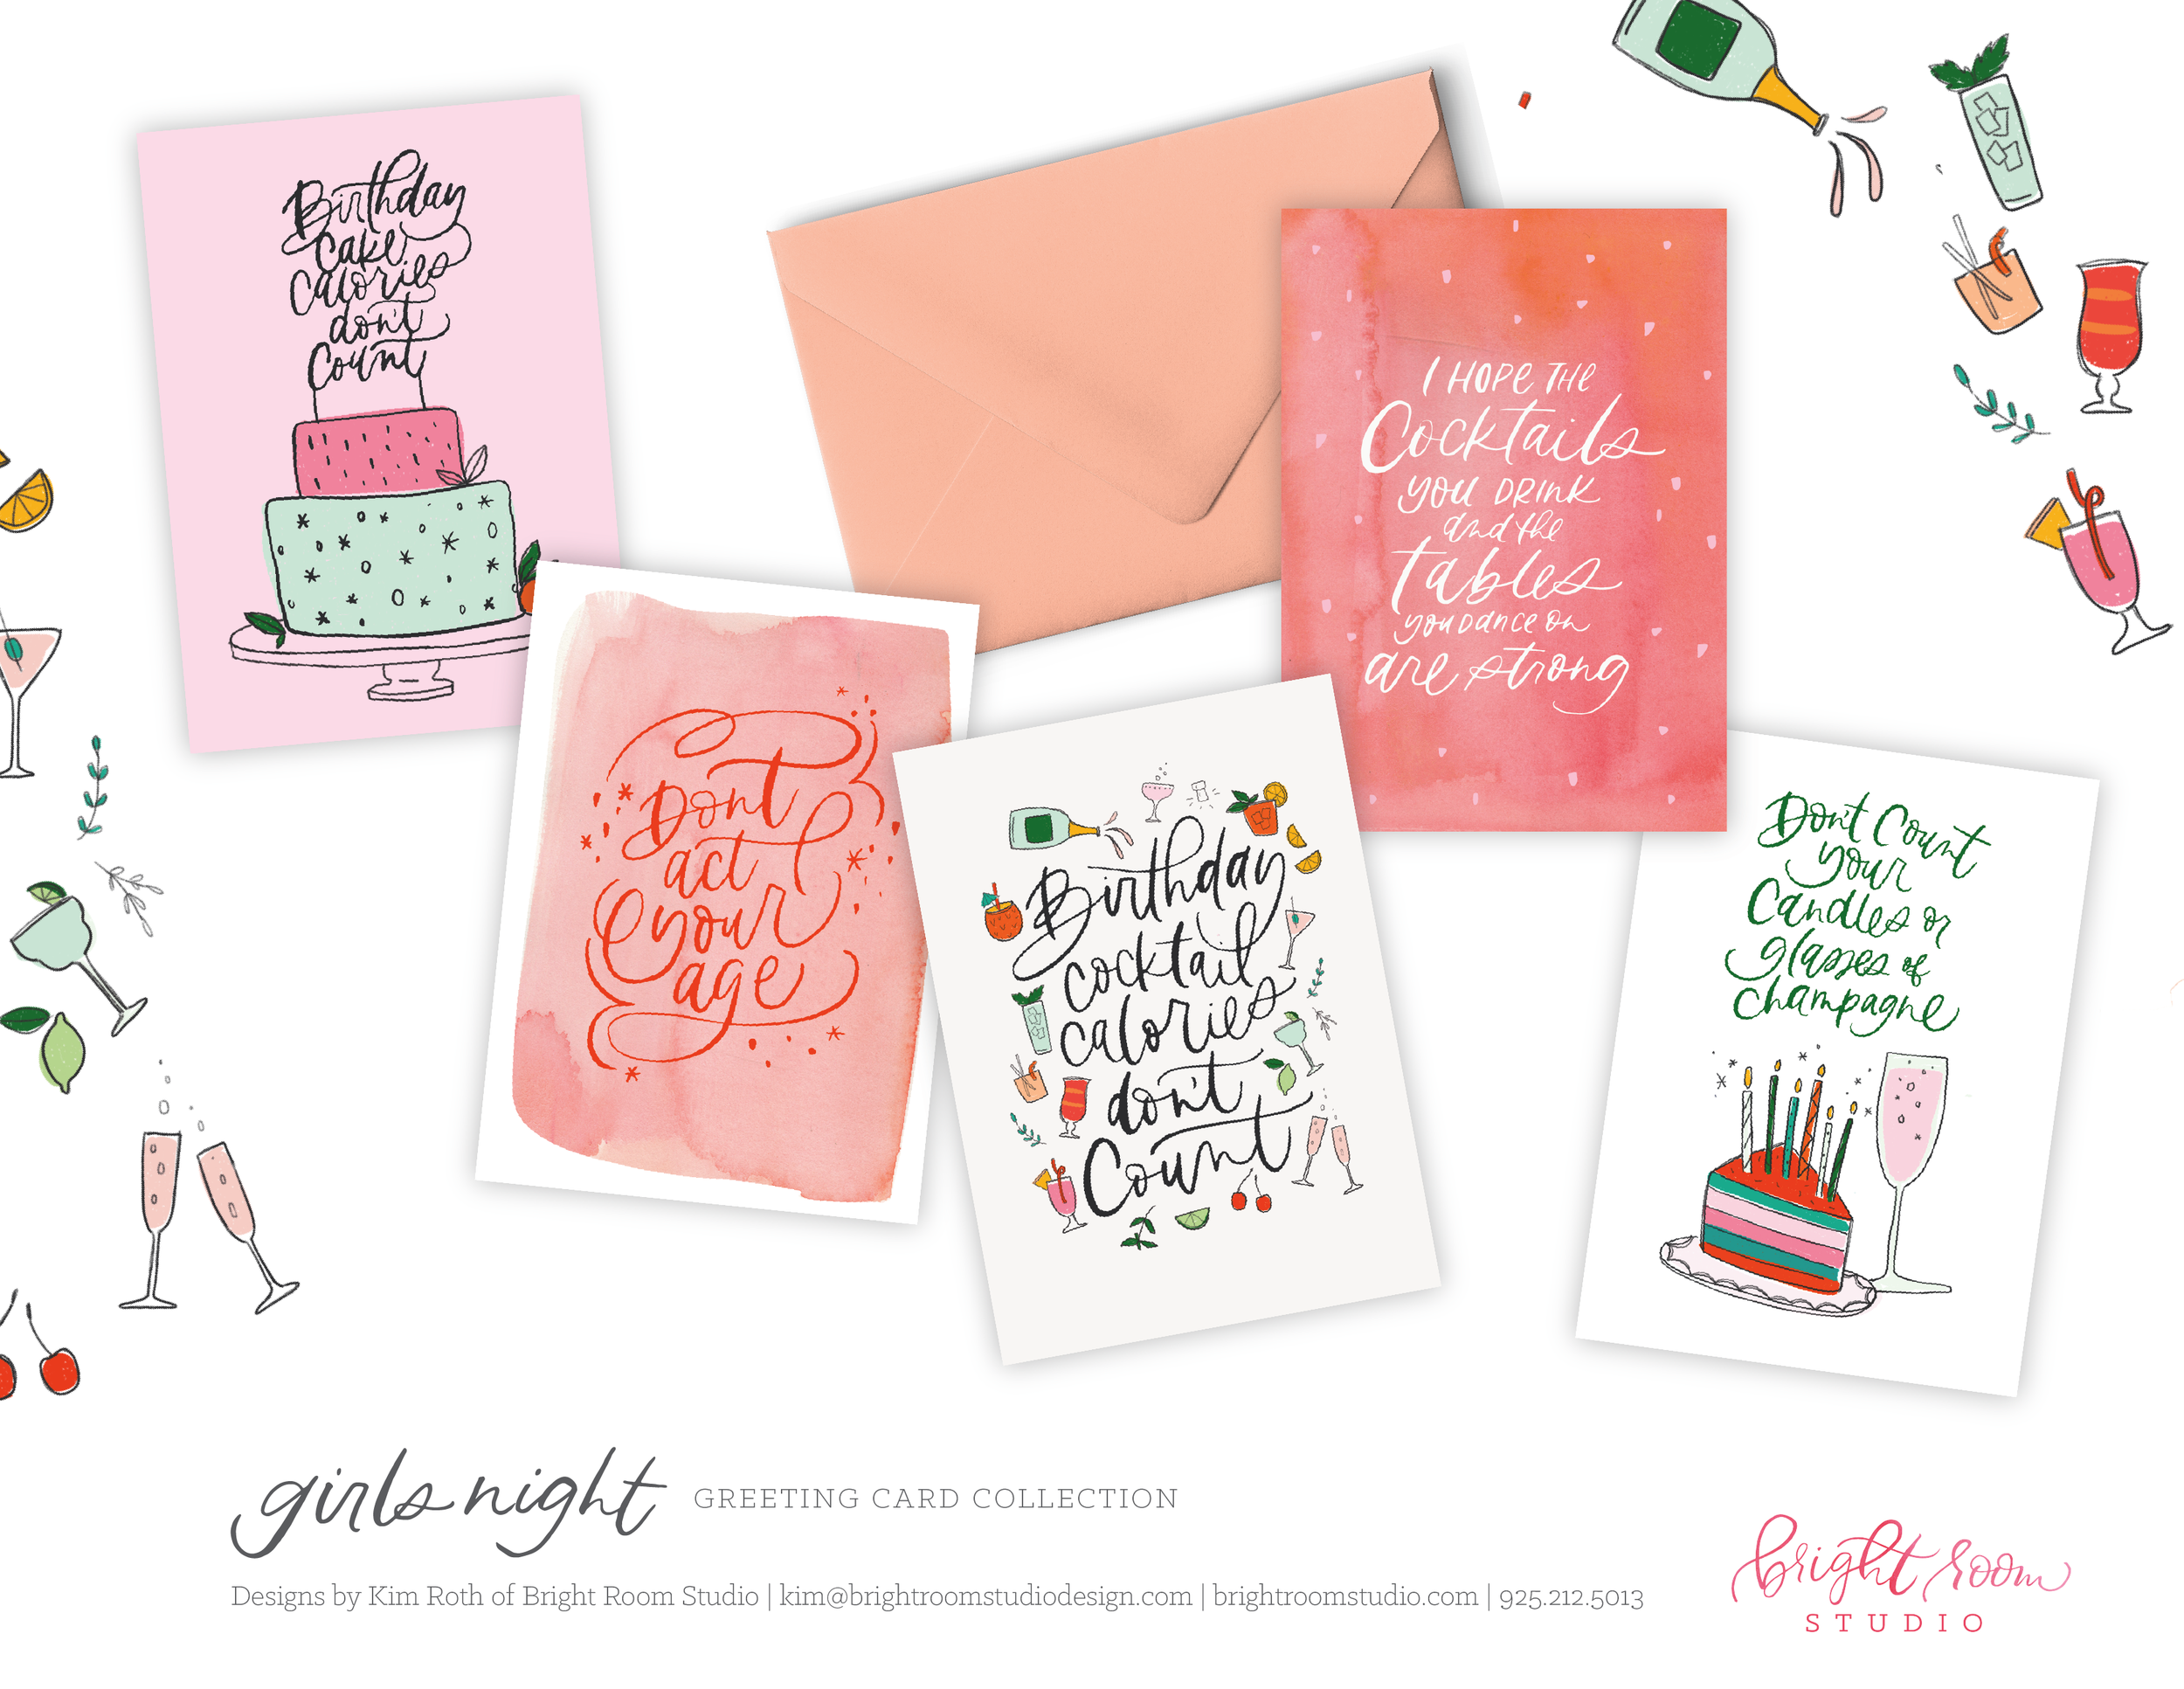 Illustrated and Hand Lettered Birthday Card Designs